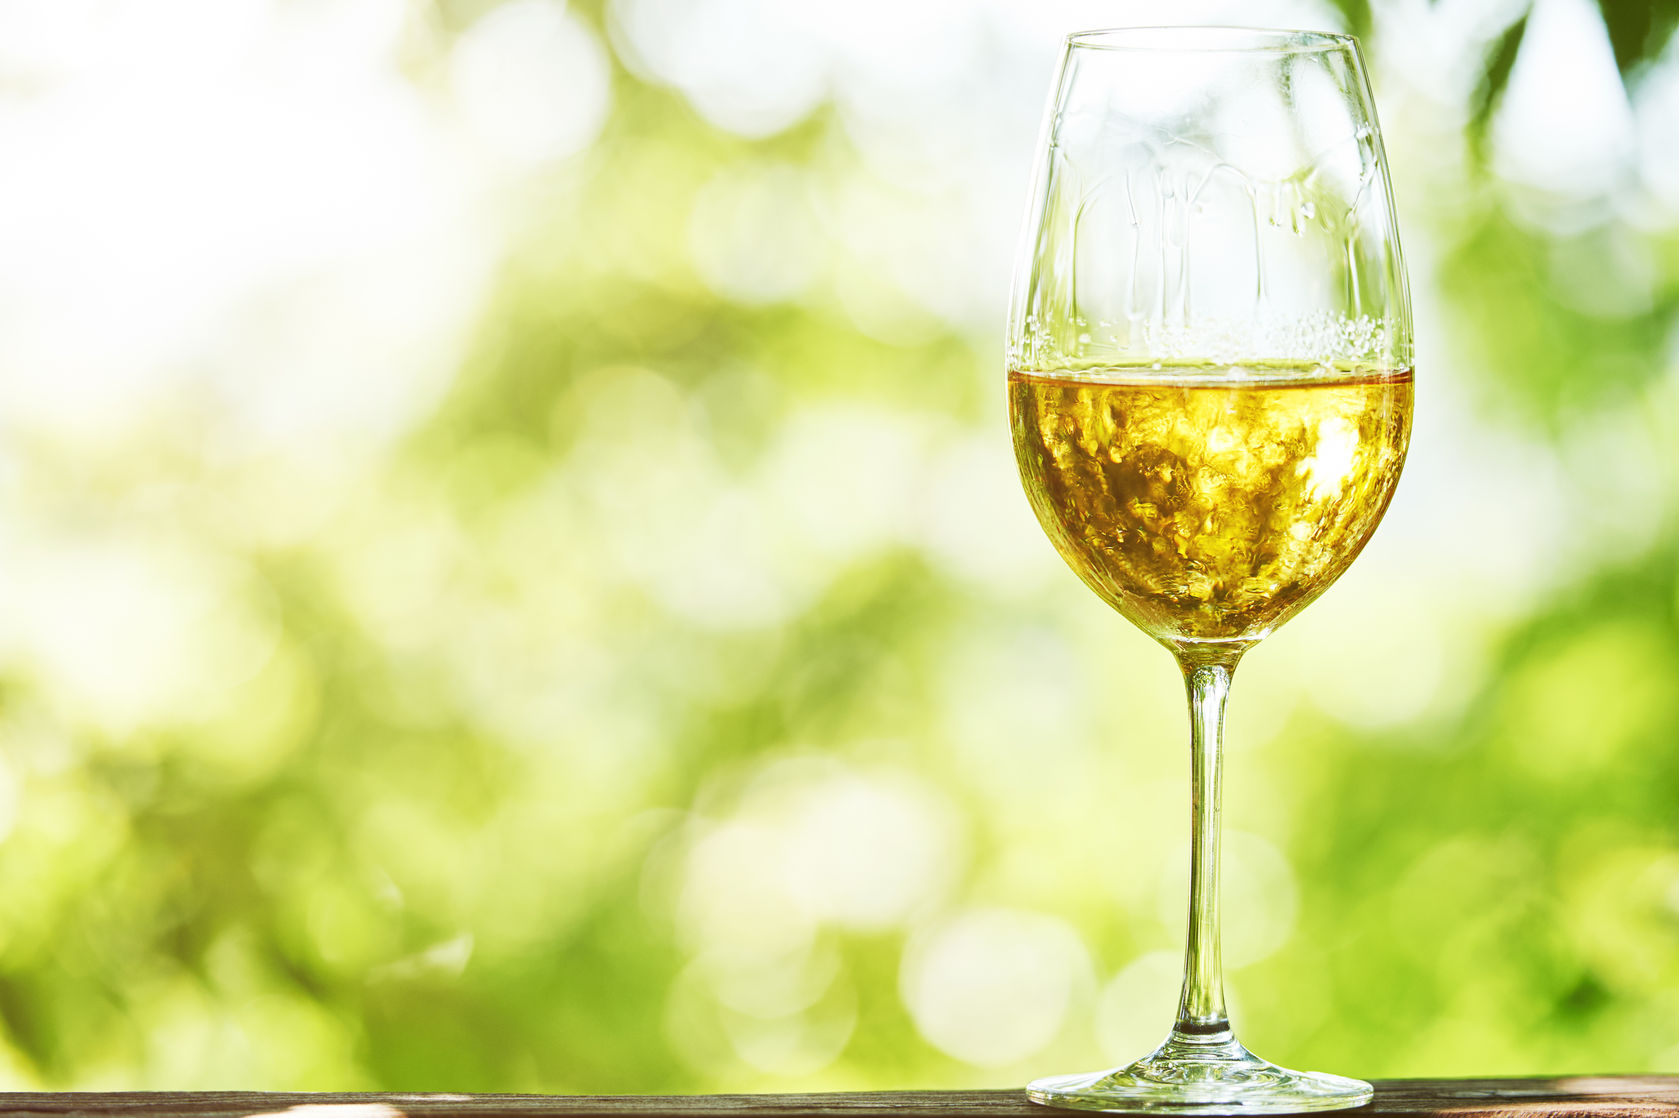 Forget Red or White…the Hottest Wines are GREEN!